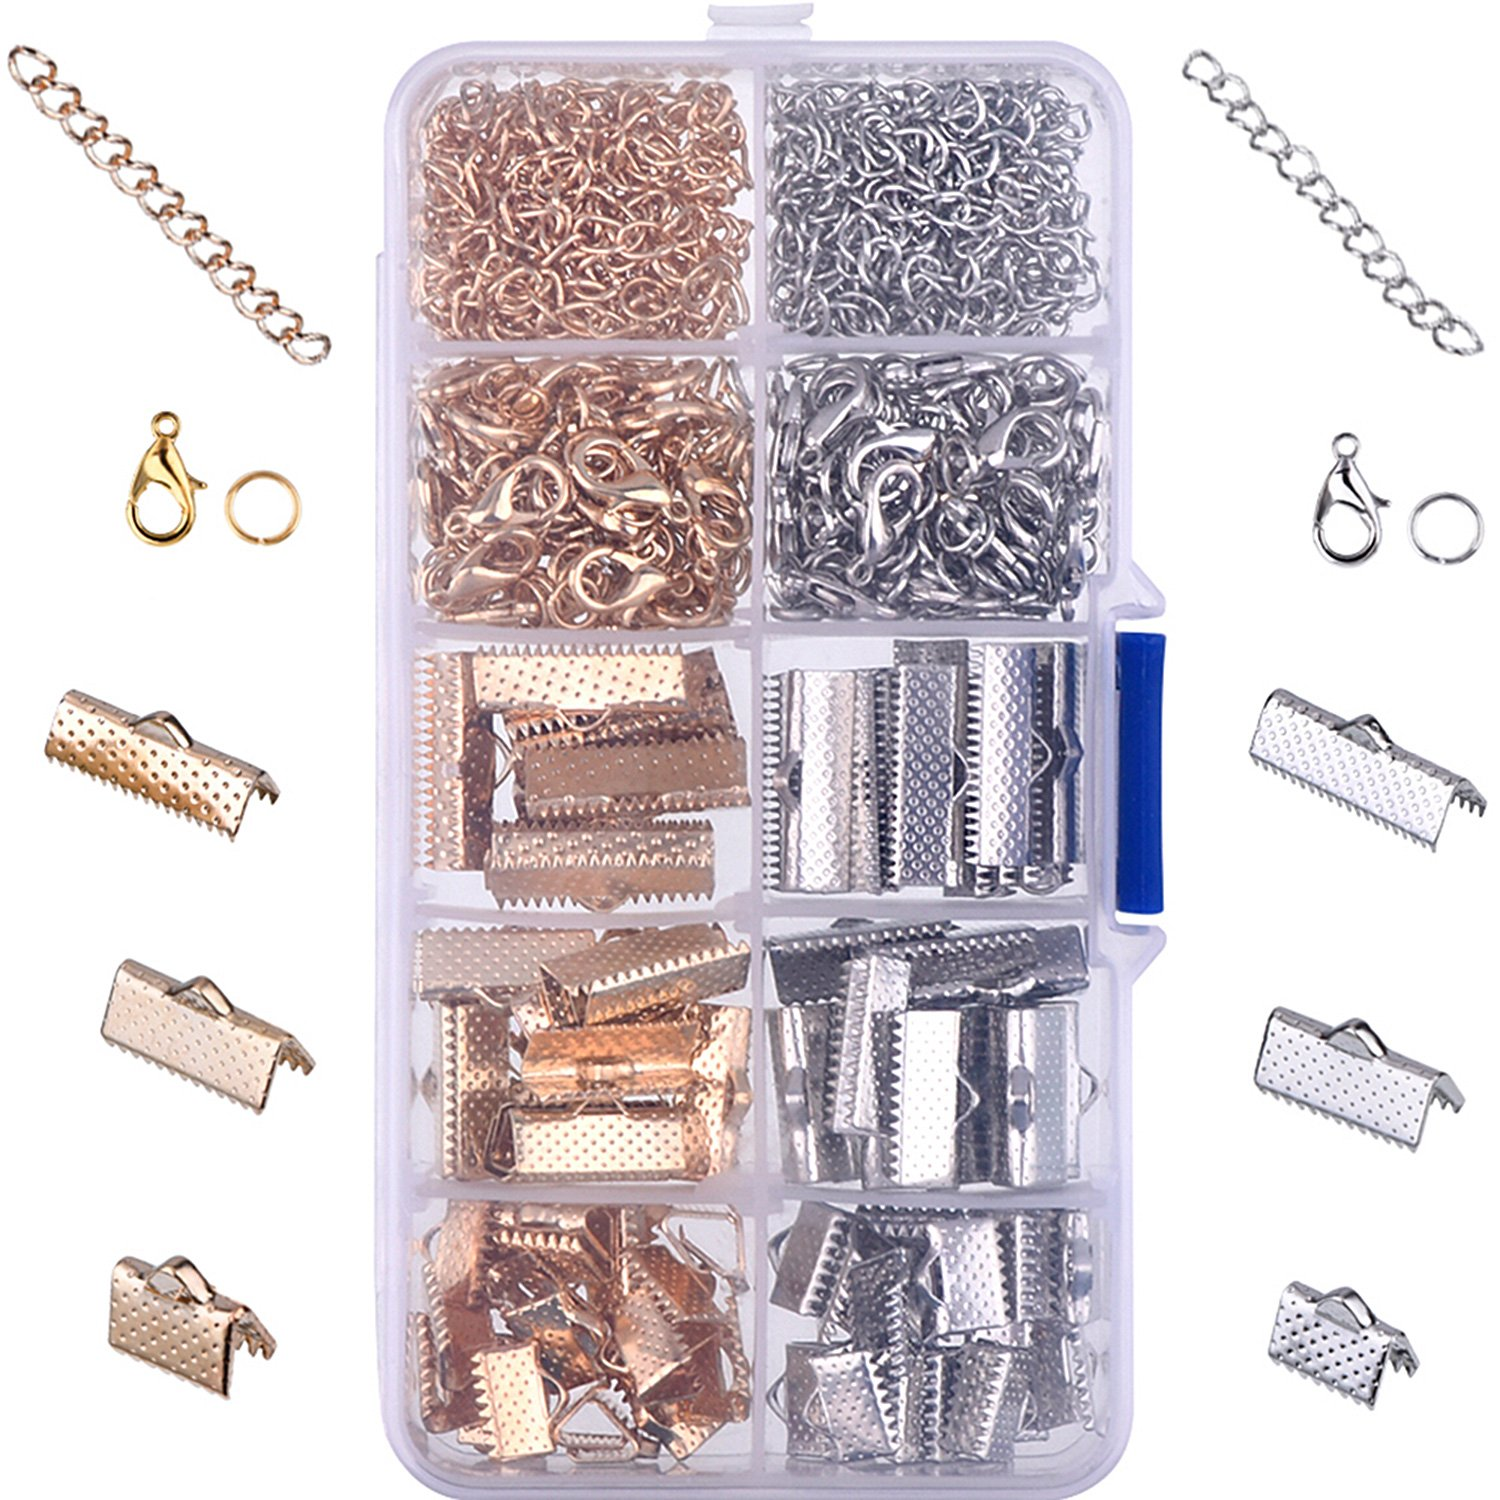 Outus Ribbon Bracelet Kit Bookmark Pinch Crimp Ends Lobster Clasps with Jump Rings and Chain Extenders, 370 Pieces 4336833299